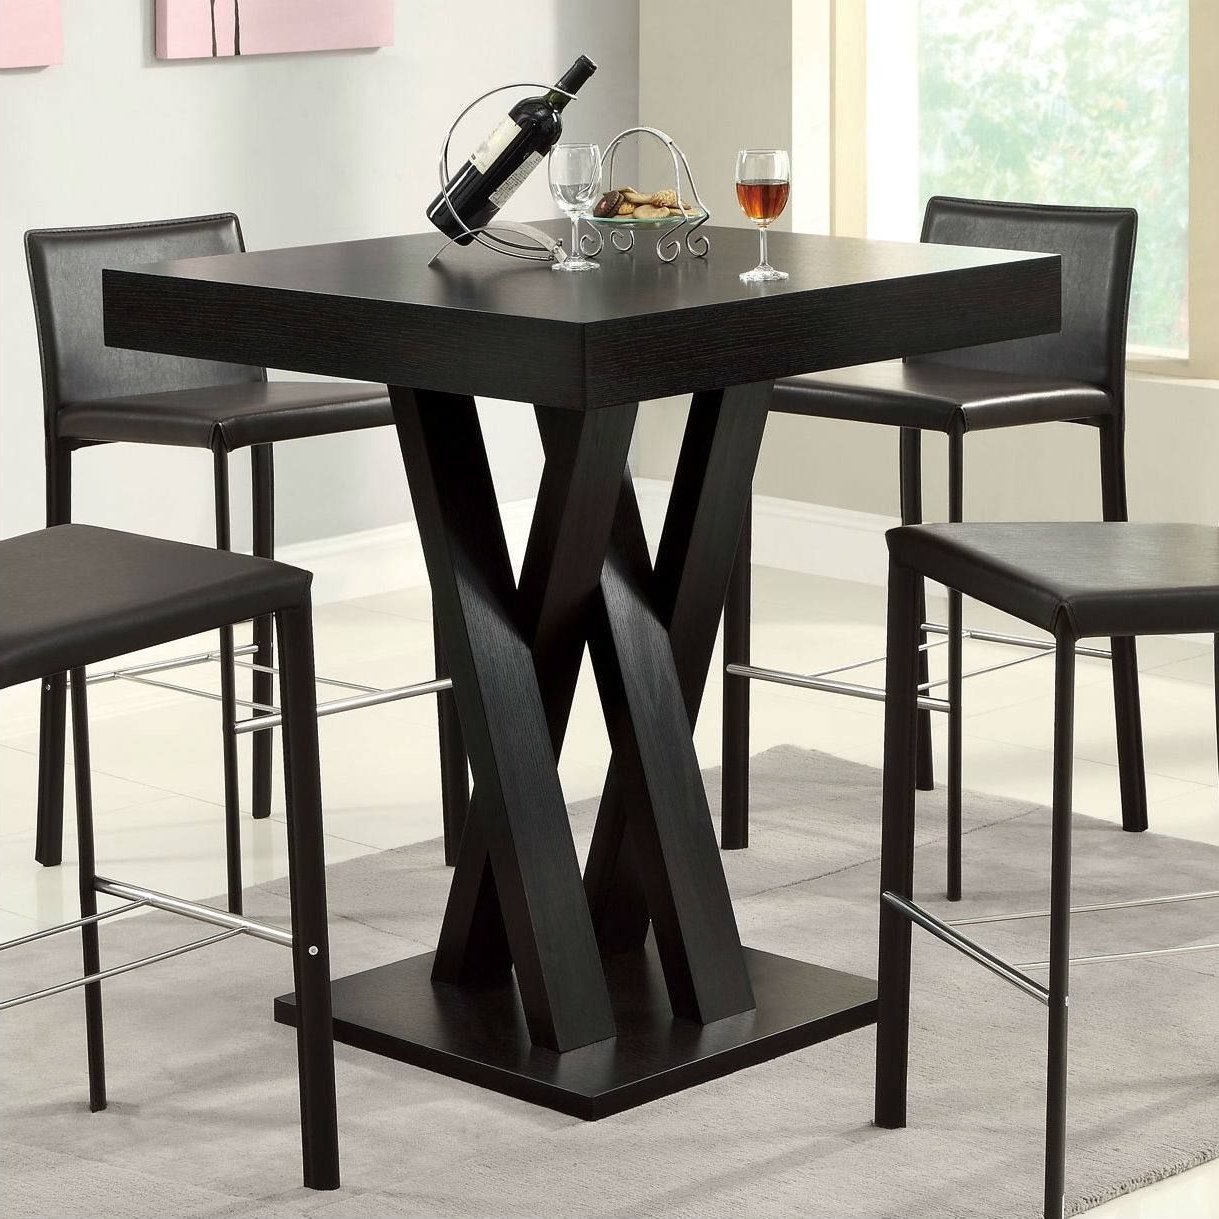 Modern 40 Inch High Square Dining Table In Dark Cappuccino With Favorite Patio Square Bar Dining Tables (View 9 of 25)